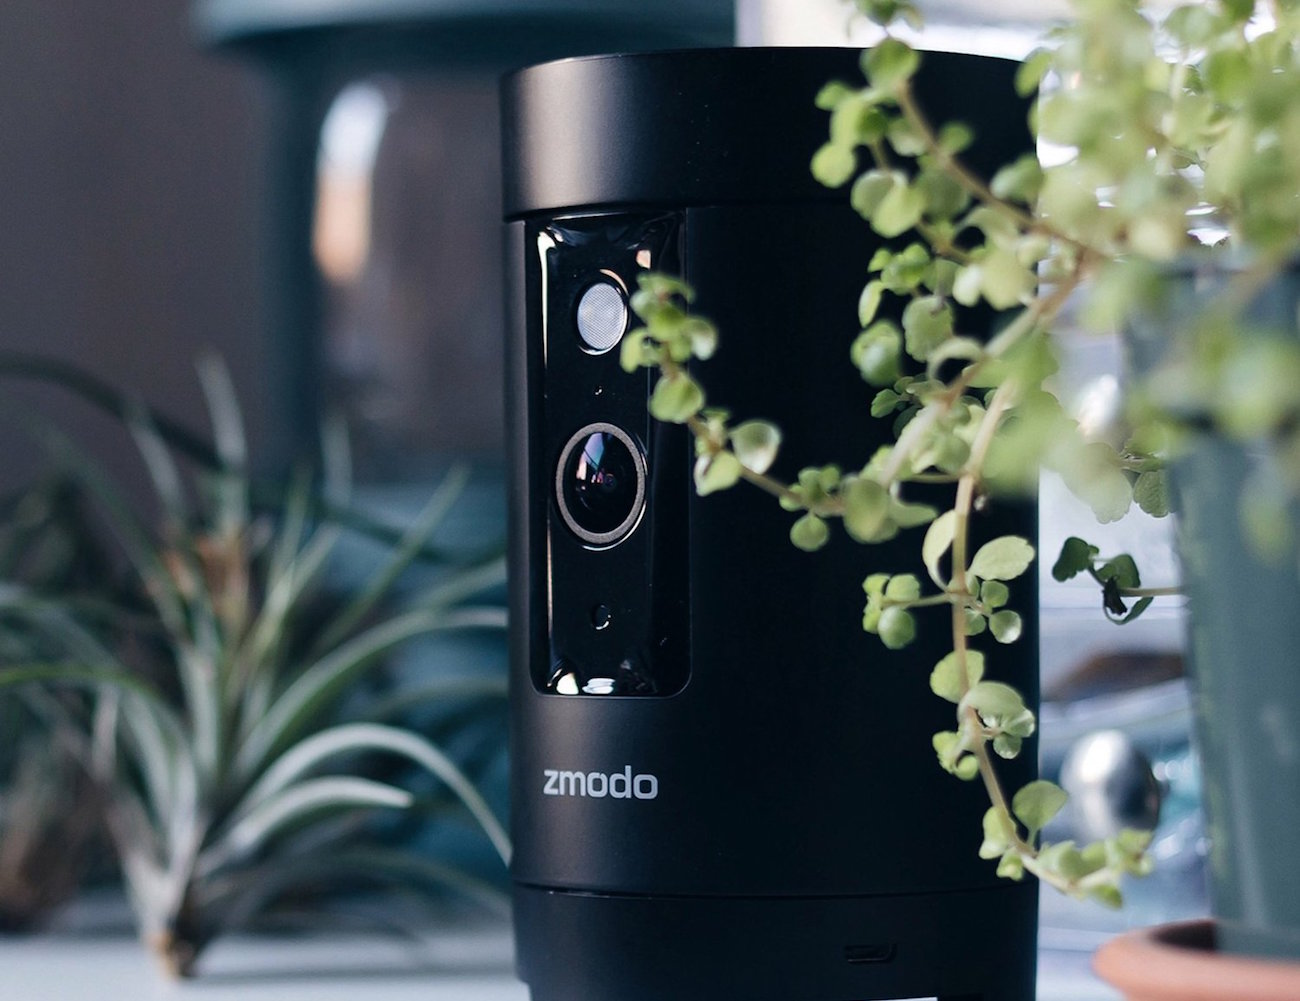 zmodo-pivot-360-robotic-camera-smart-hub-01